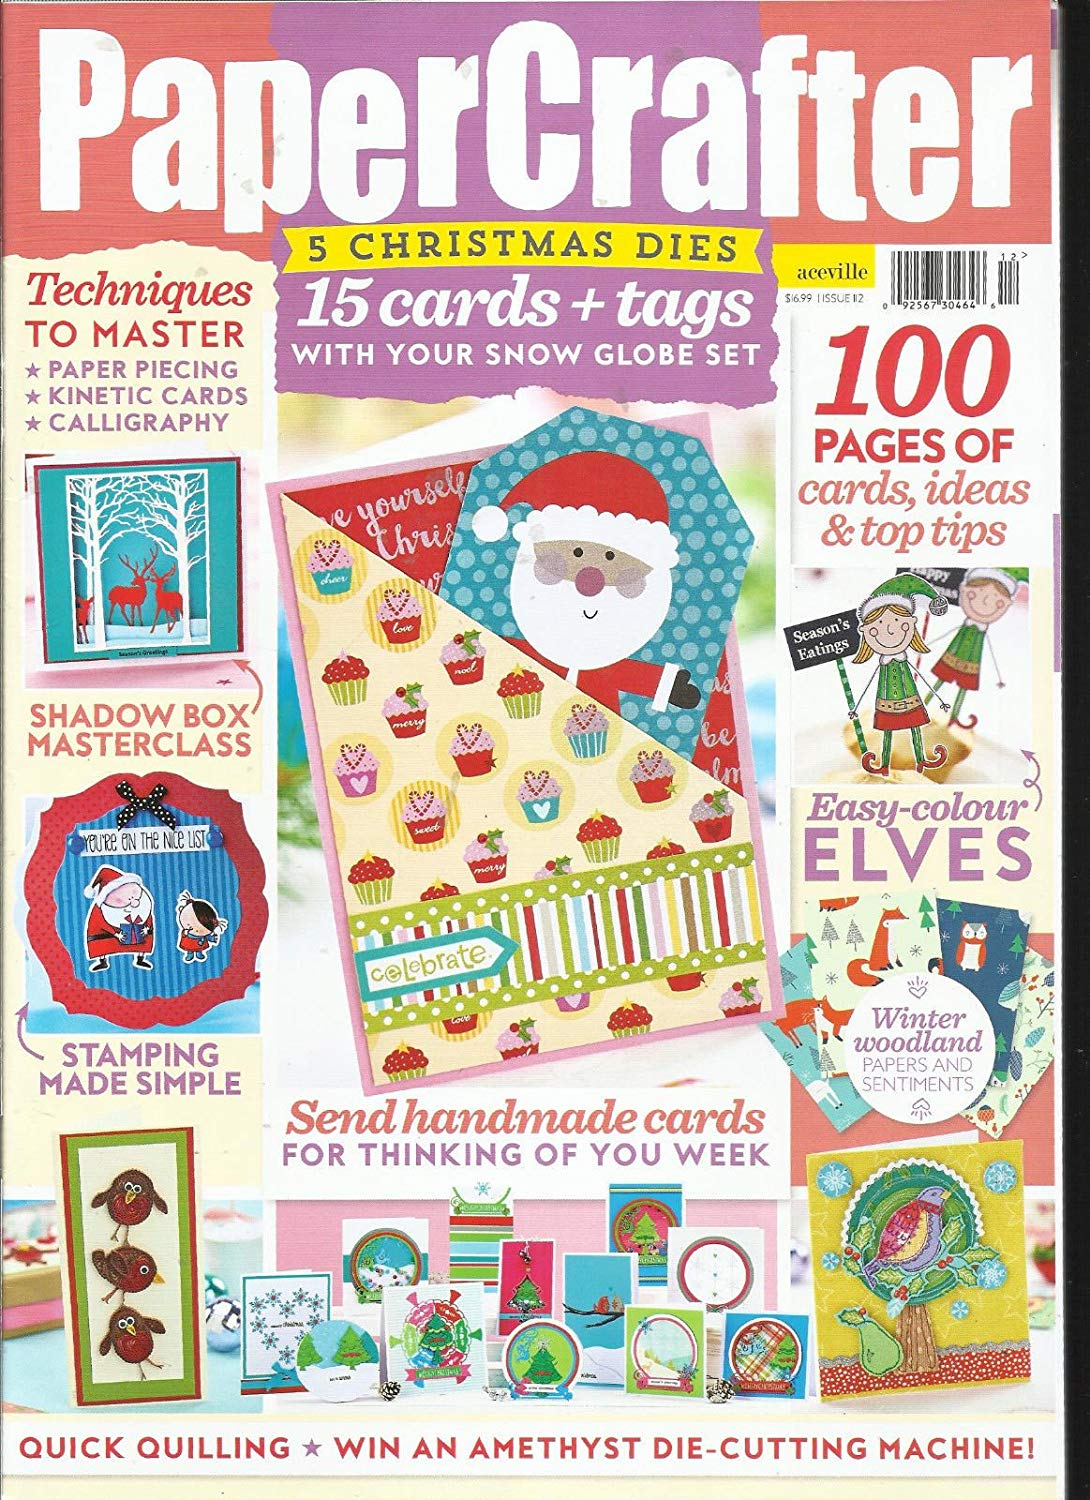 PAPER CRAFTER ISSUE, 2017# 112 FREE GIFTS OR CARD KIT ARE NOT INCLUDED.